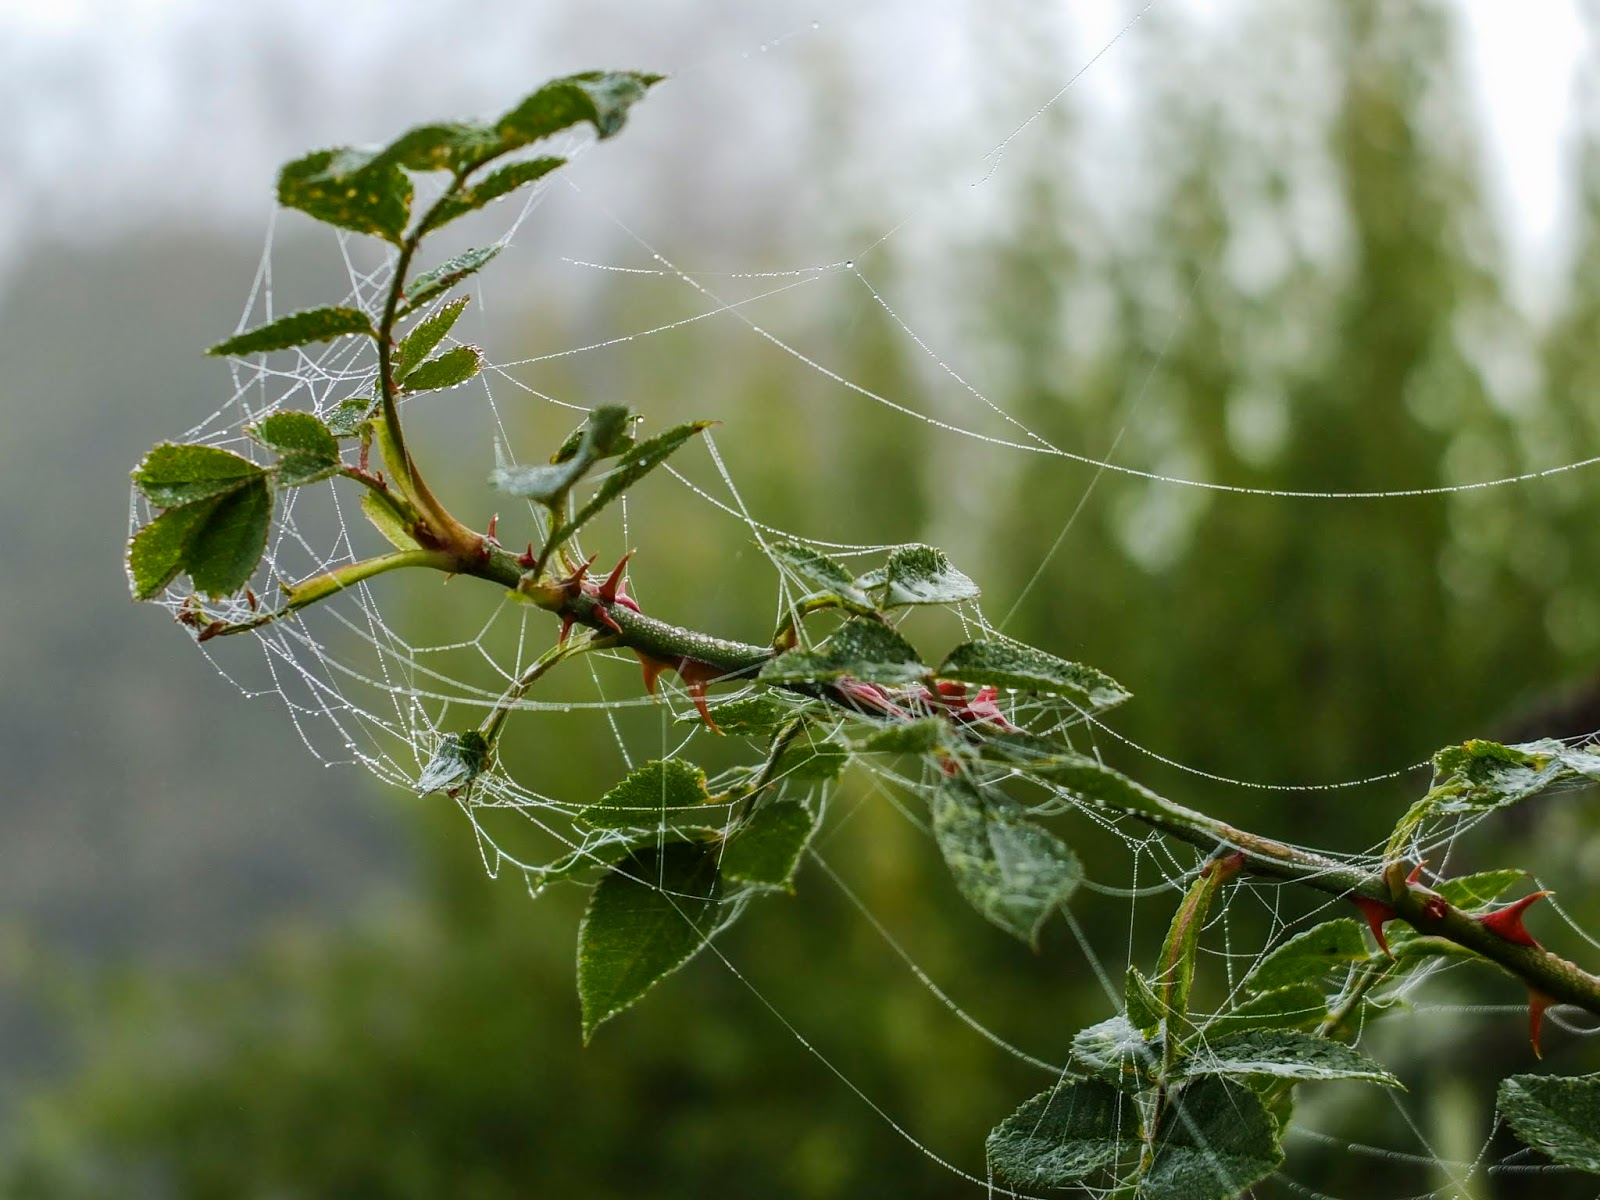 A rose bush branch wrapped in a spider web on a foggy day.